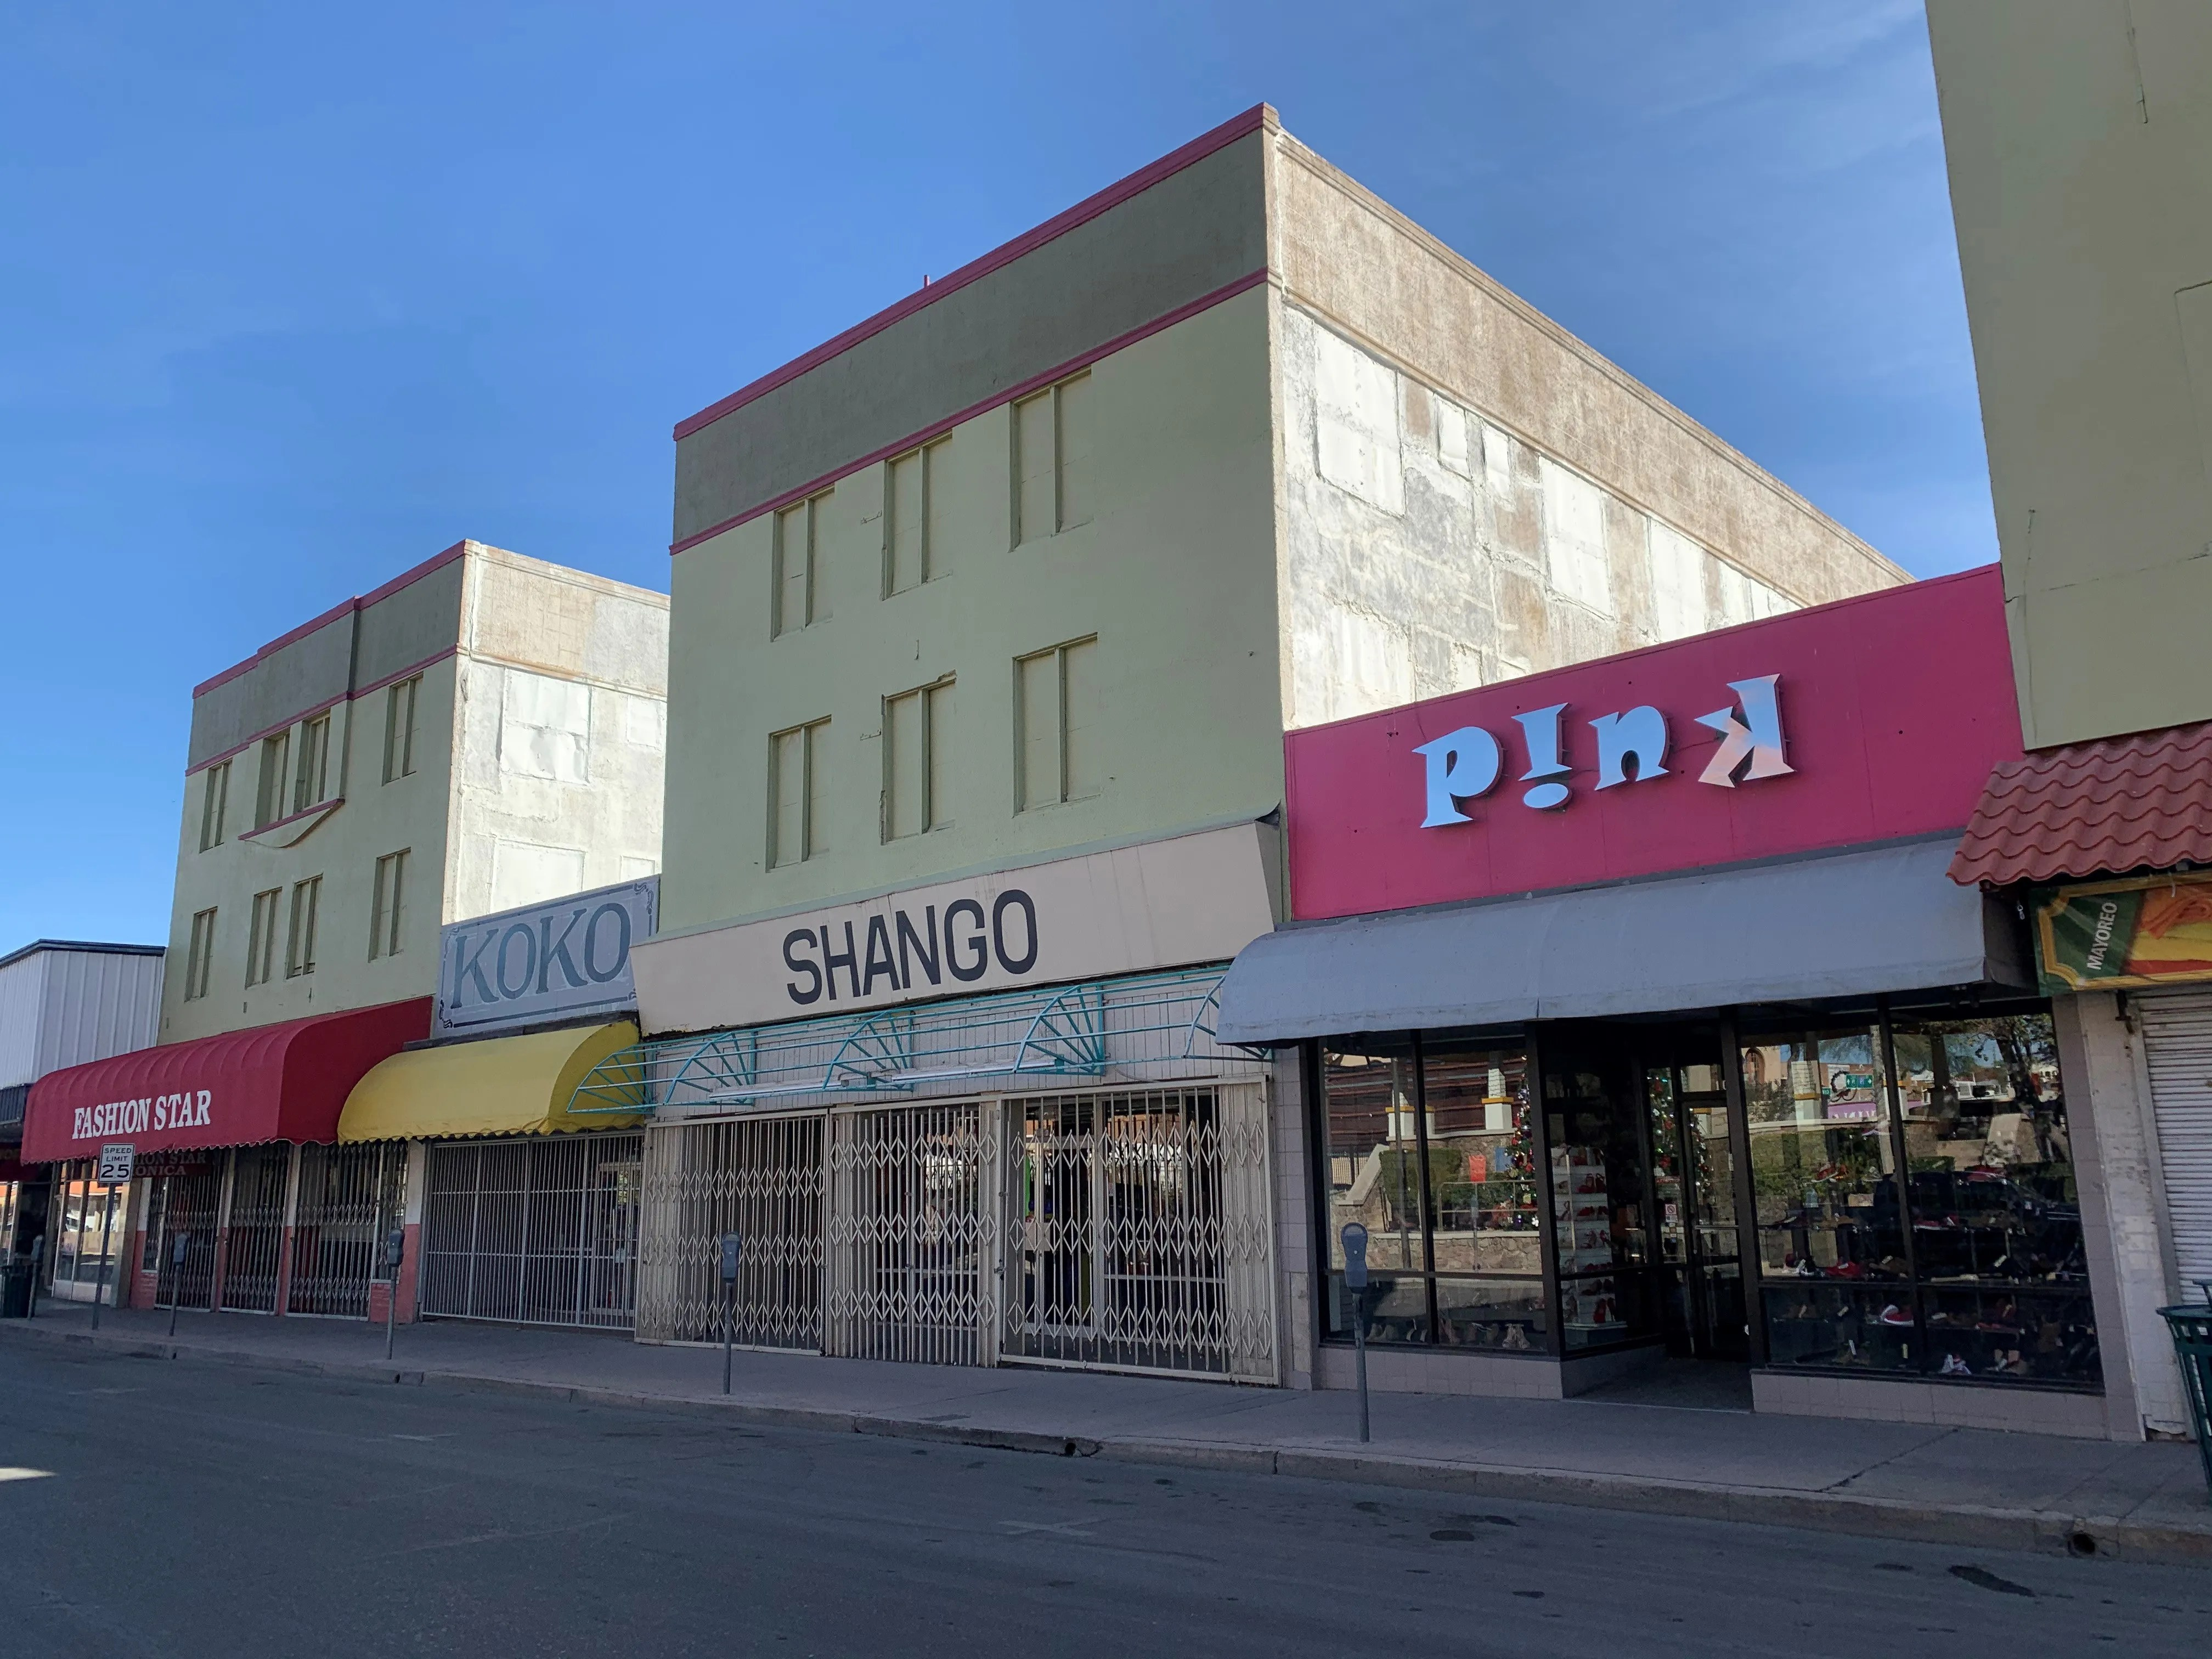 The majority of businesses along Morley Avenue in downtown Nogales remain closed because of COVID-19, as well as the lack of shoppers from Mexico who are unable to cross because of travel restrictions to keep the virus from spreading.